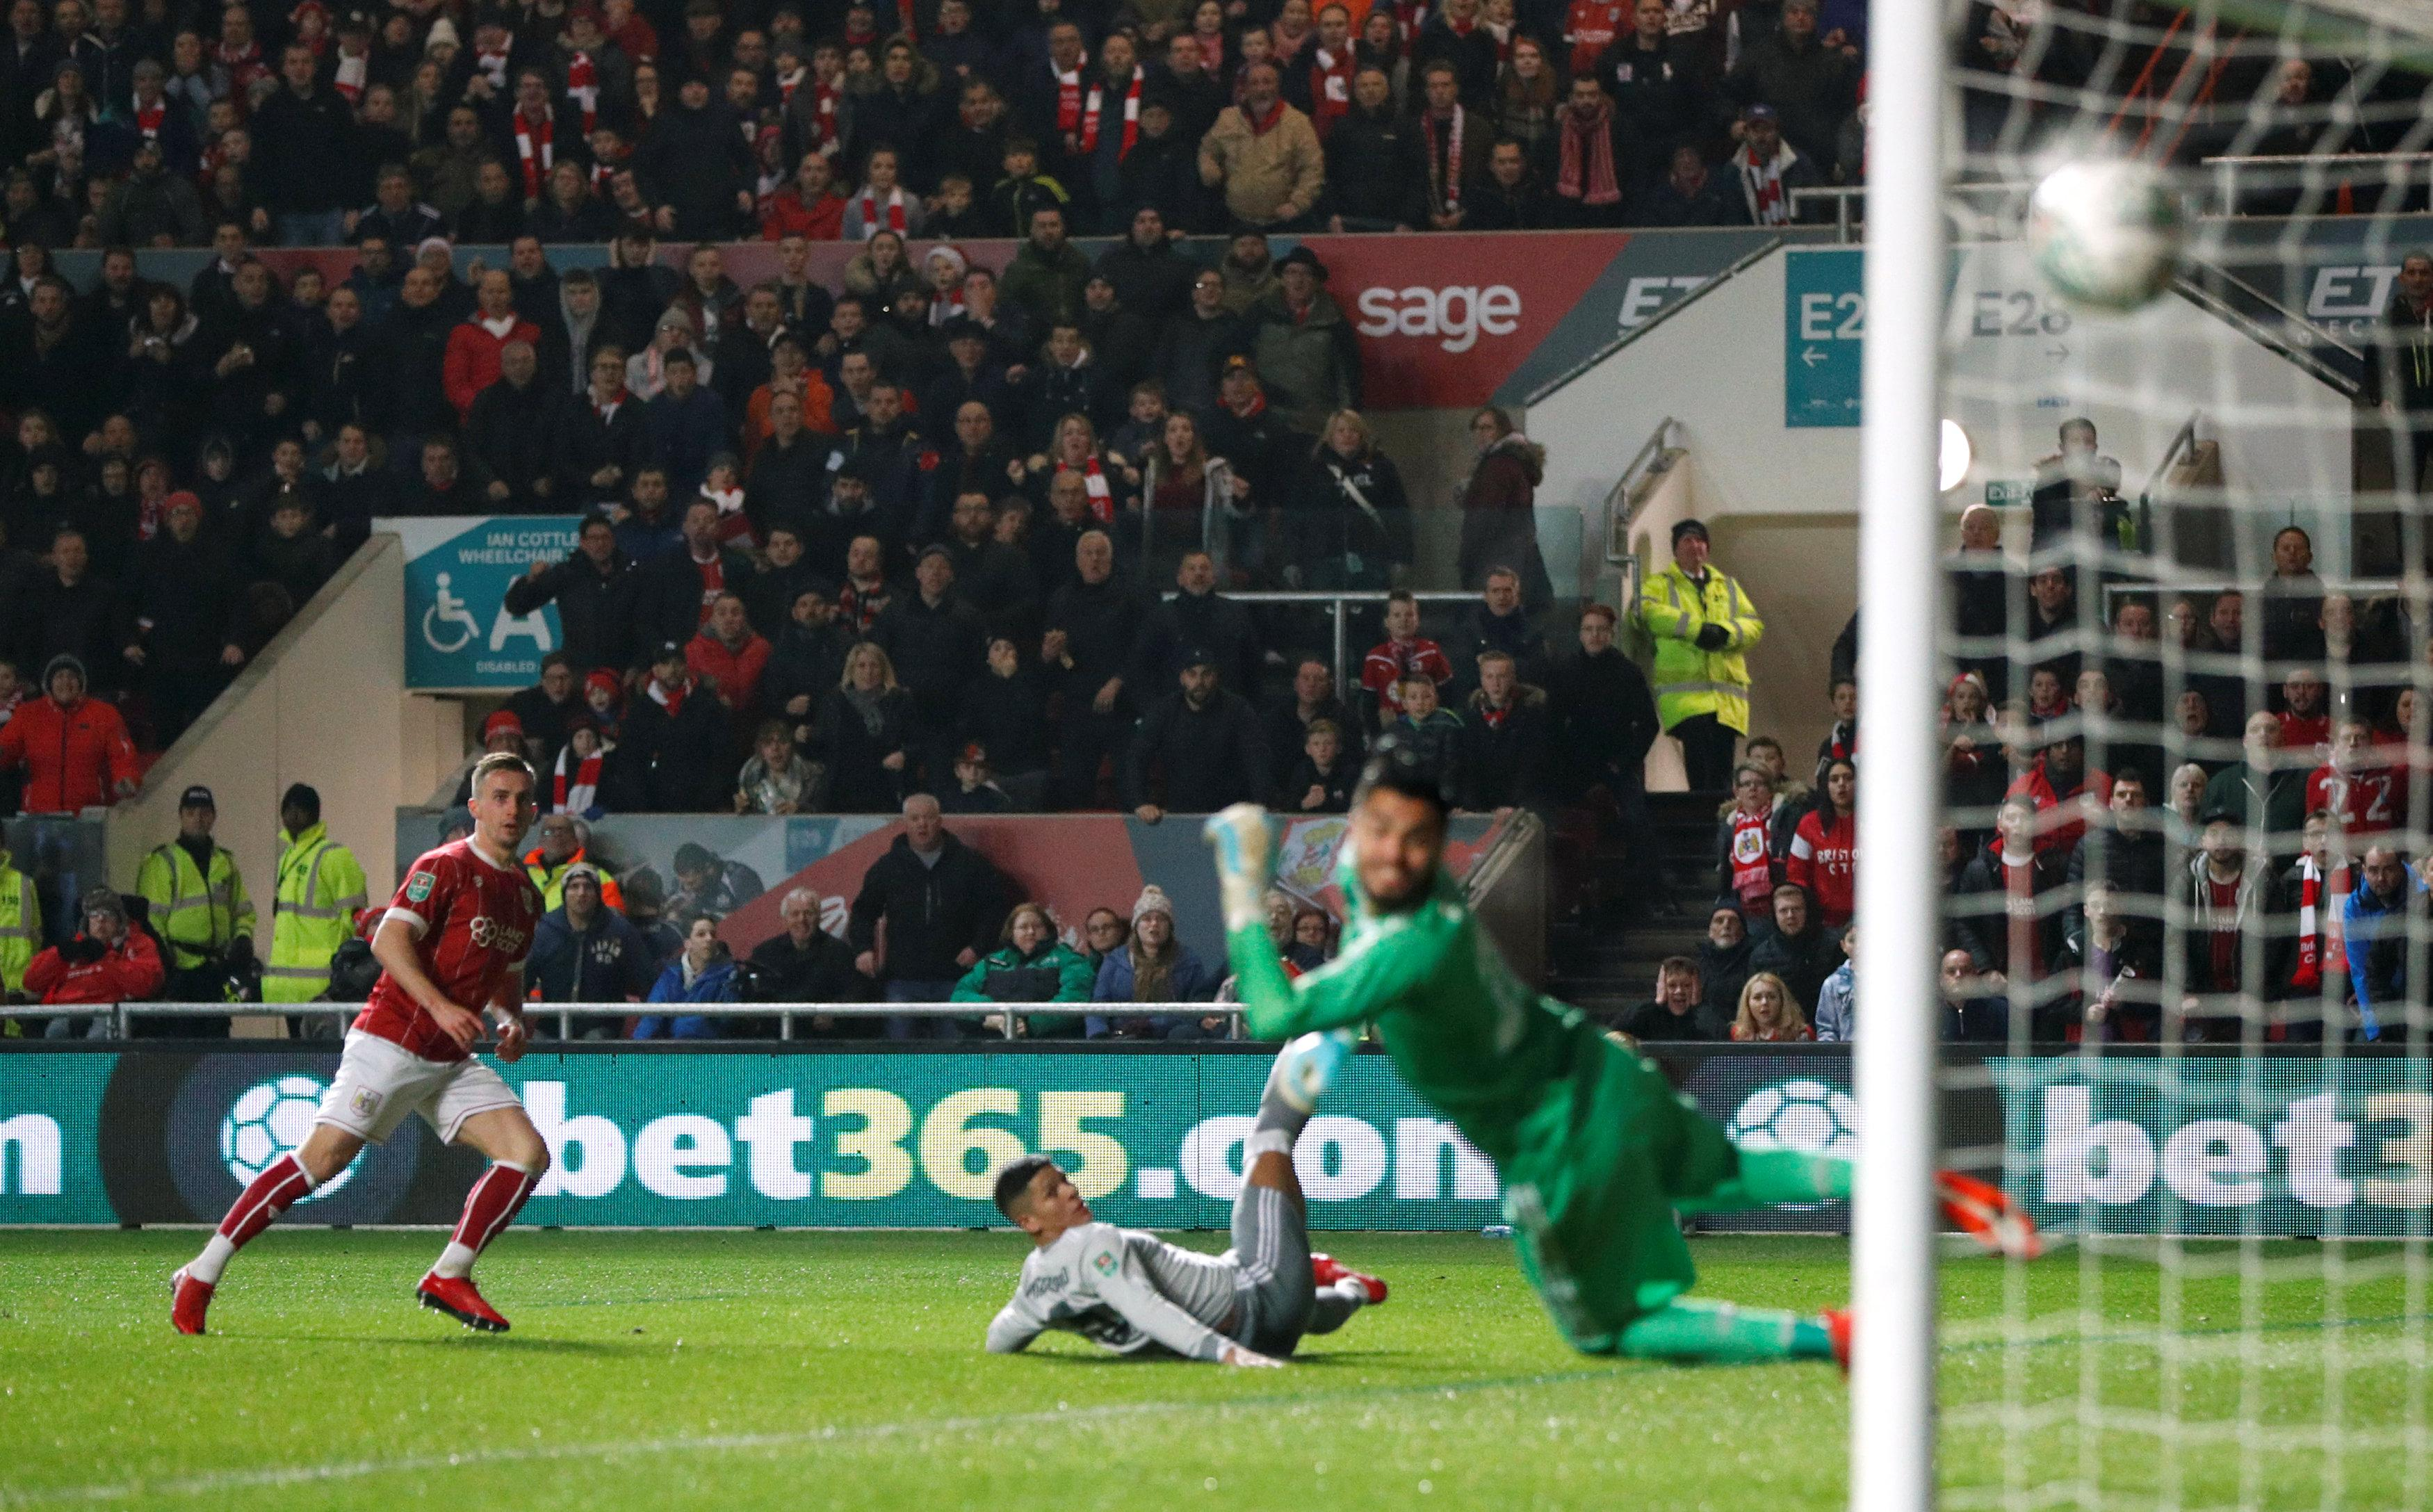 Joe Bryan scored a stunner to help beat Manchester United in last year's League Cup